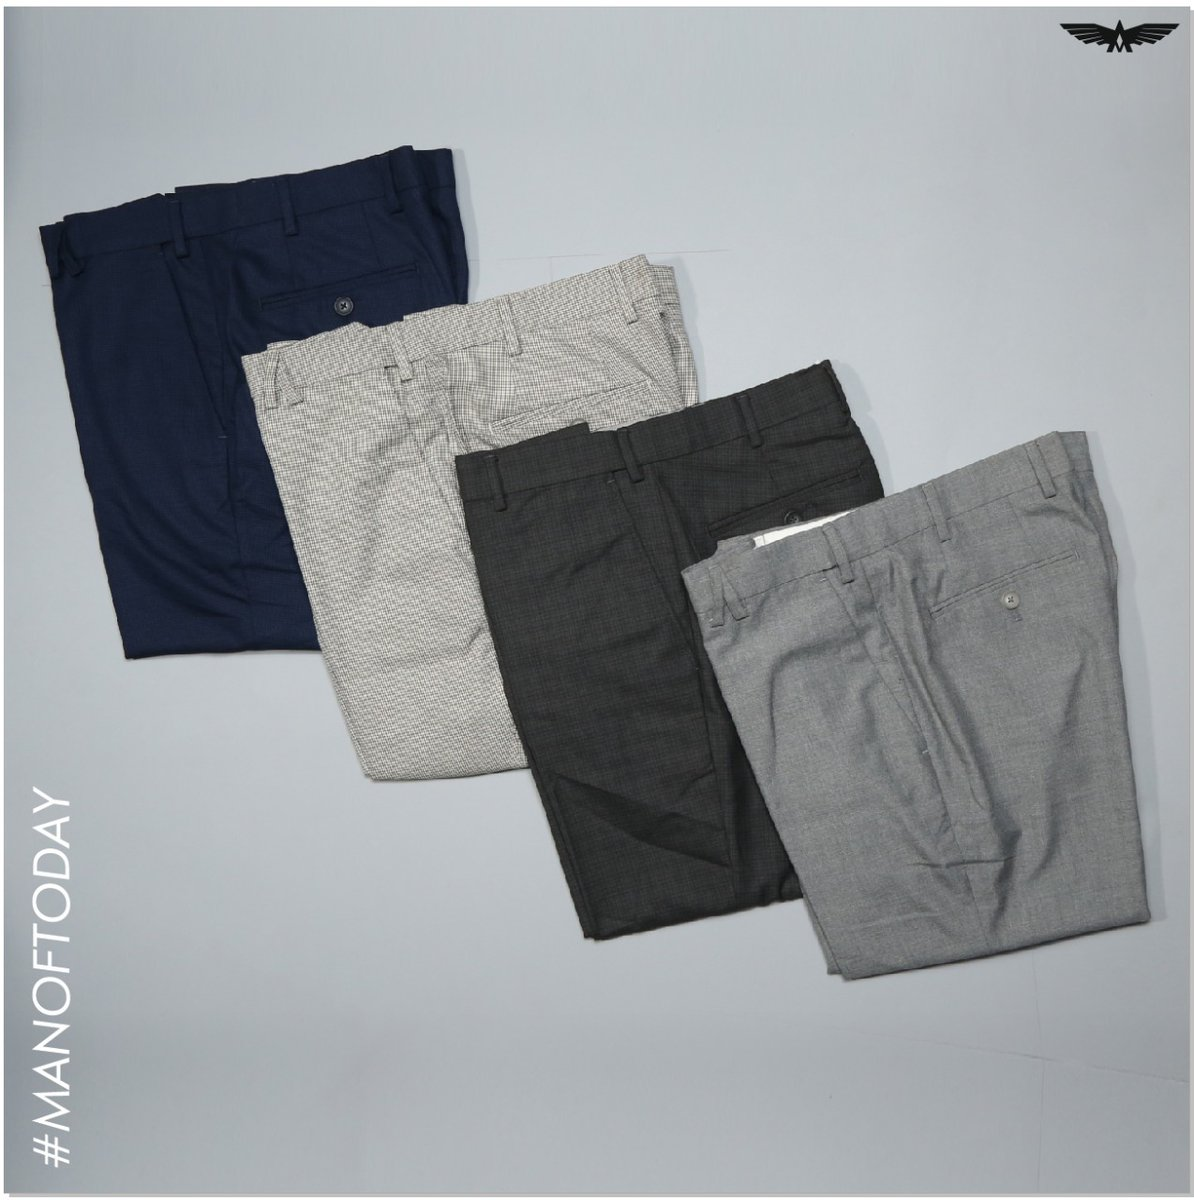 Join the league of fashionable men this season by wearing these trousers from Park Avenue. Feel utmost comfort wearing them with a smart shirt and a pair of oxfords.  #WorkPlayCelebrate #MensWear #manoftoday #furuteworkwear #IndianFashion #ParkAvenue #aw21 https://t.co/sEgLmlBe4A